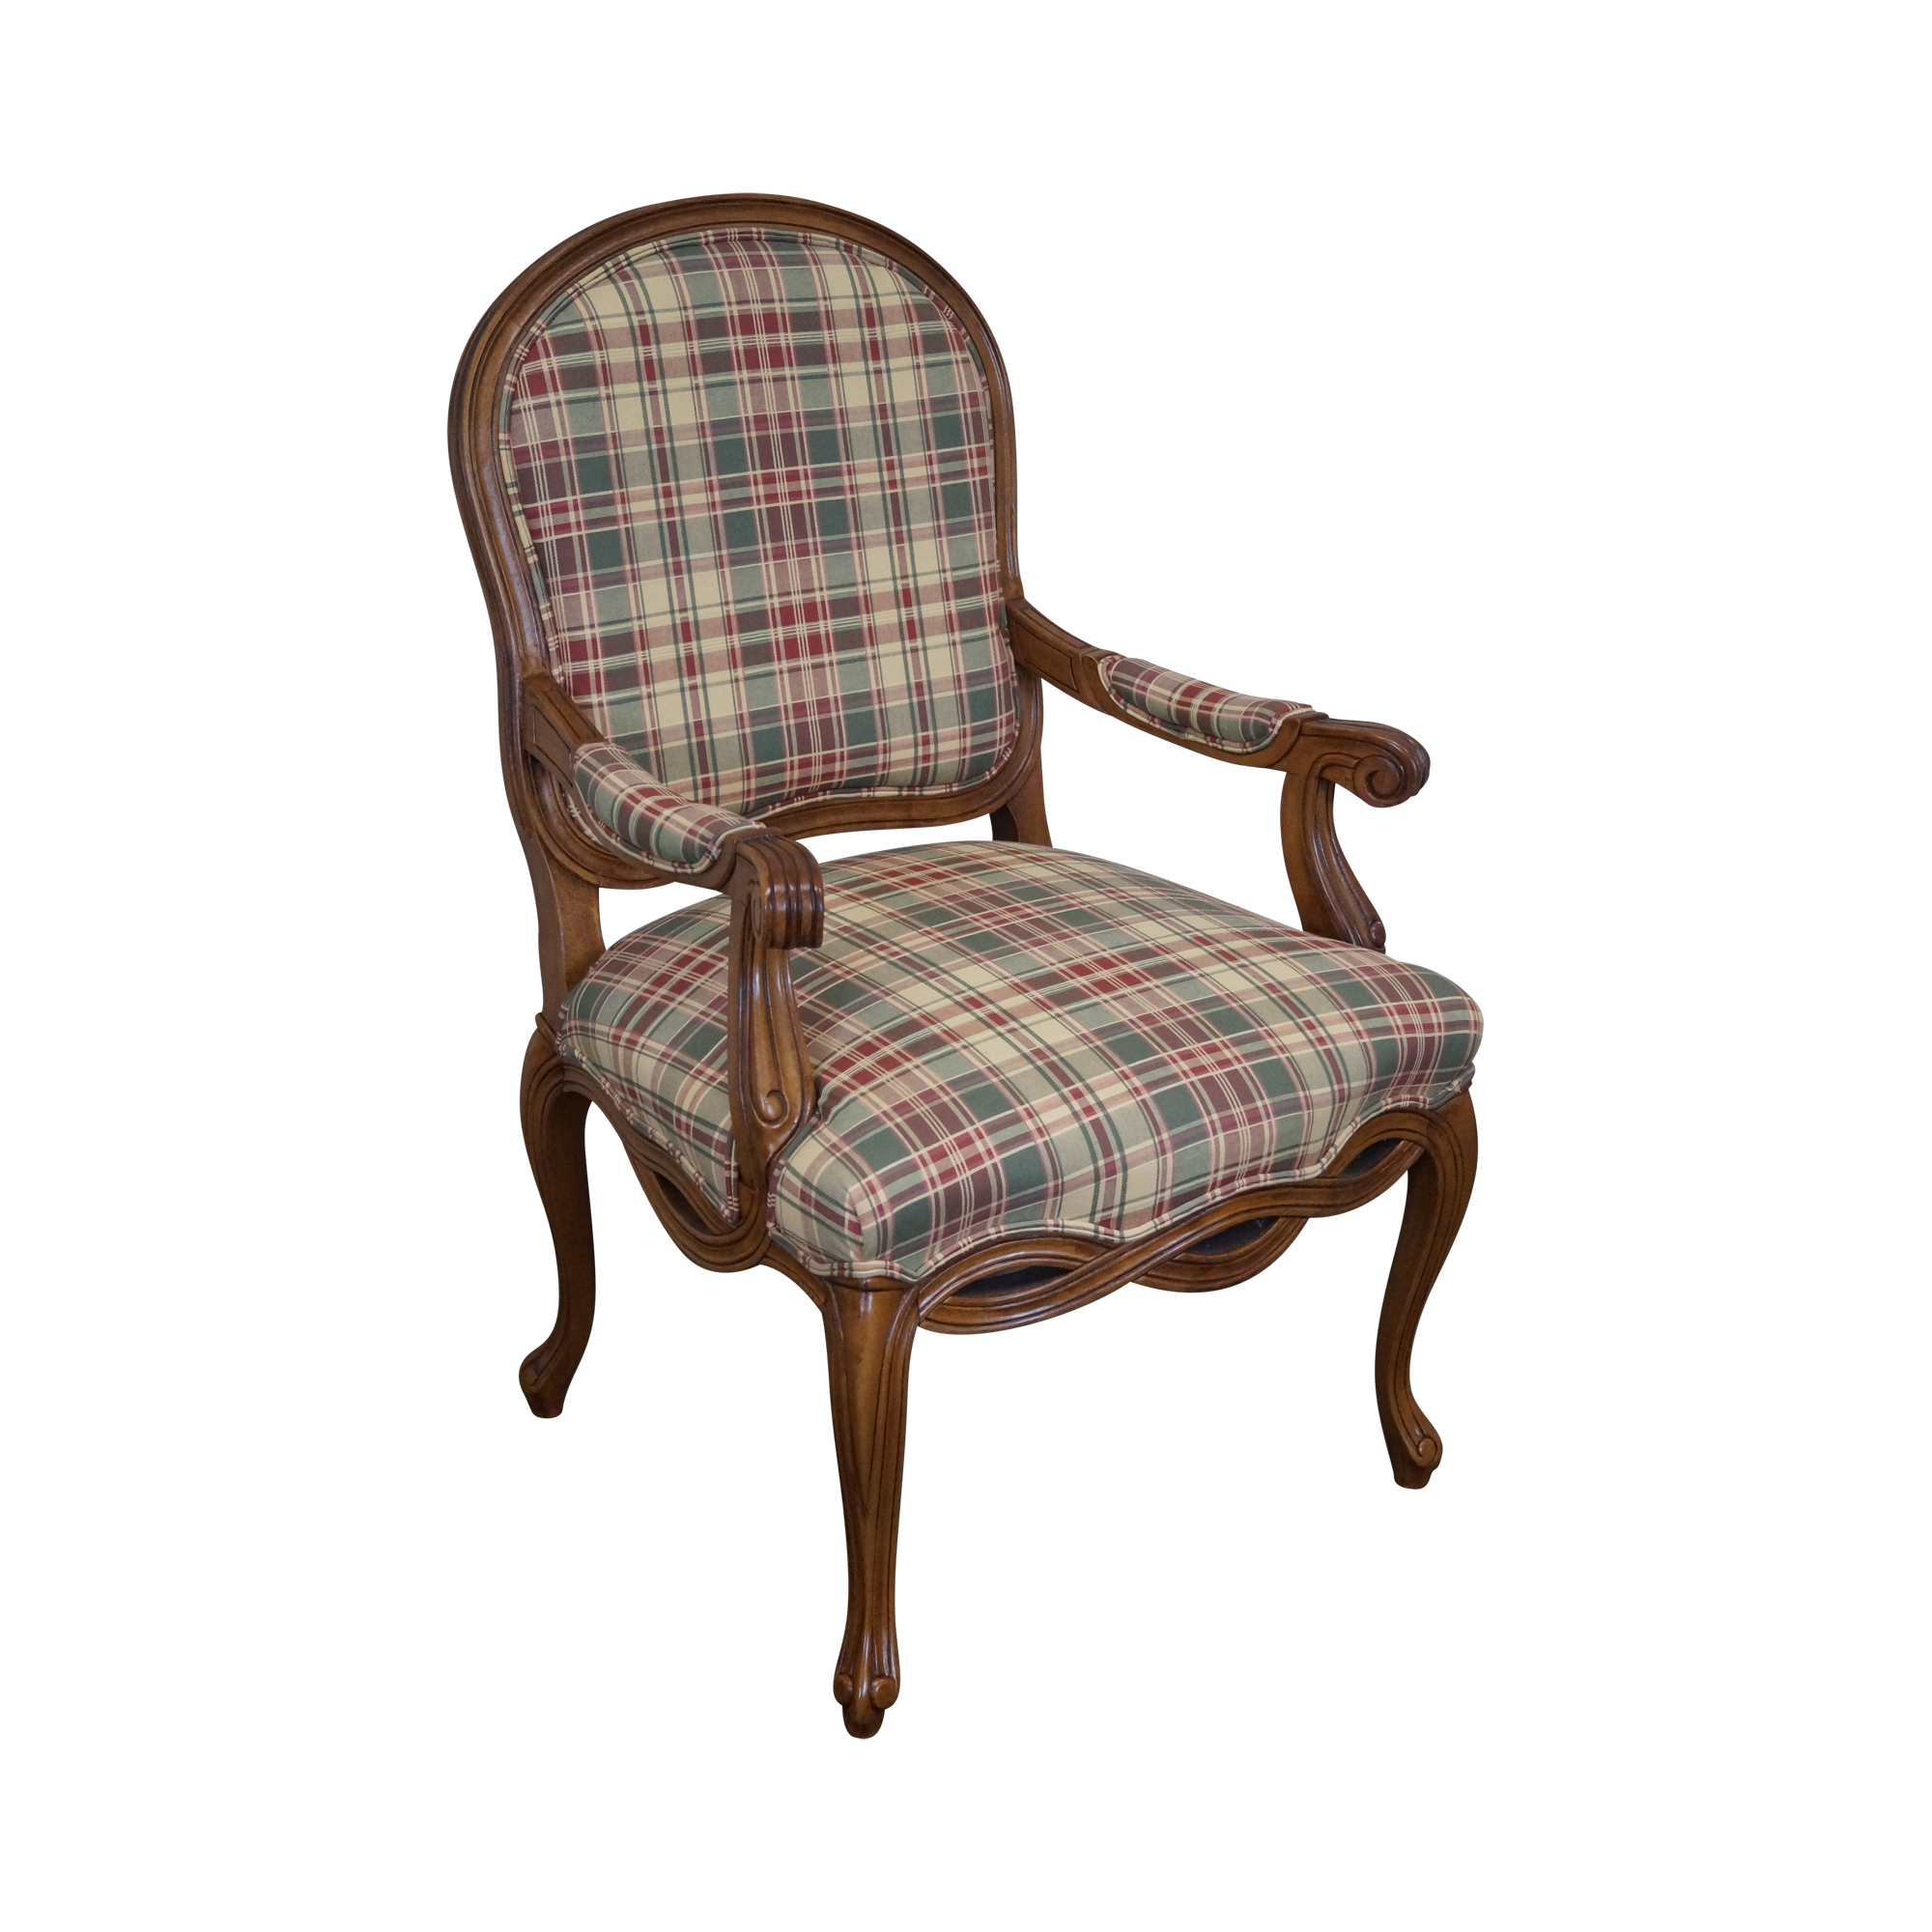 Fairfield French Style Plaid Upholstered Arm Chair